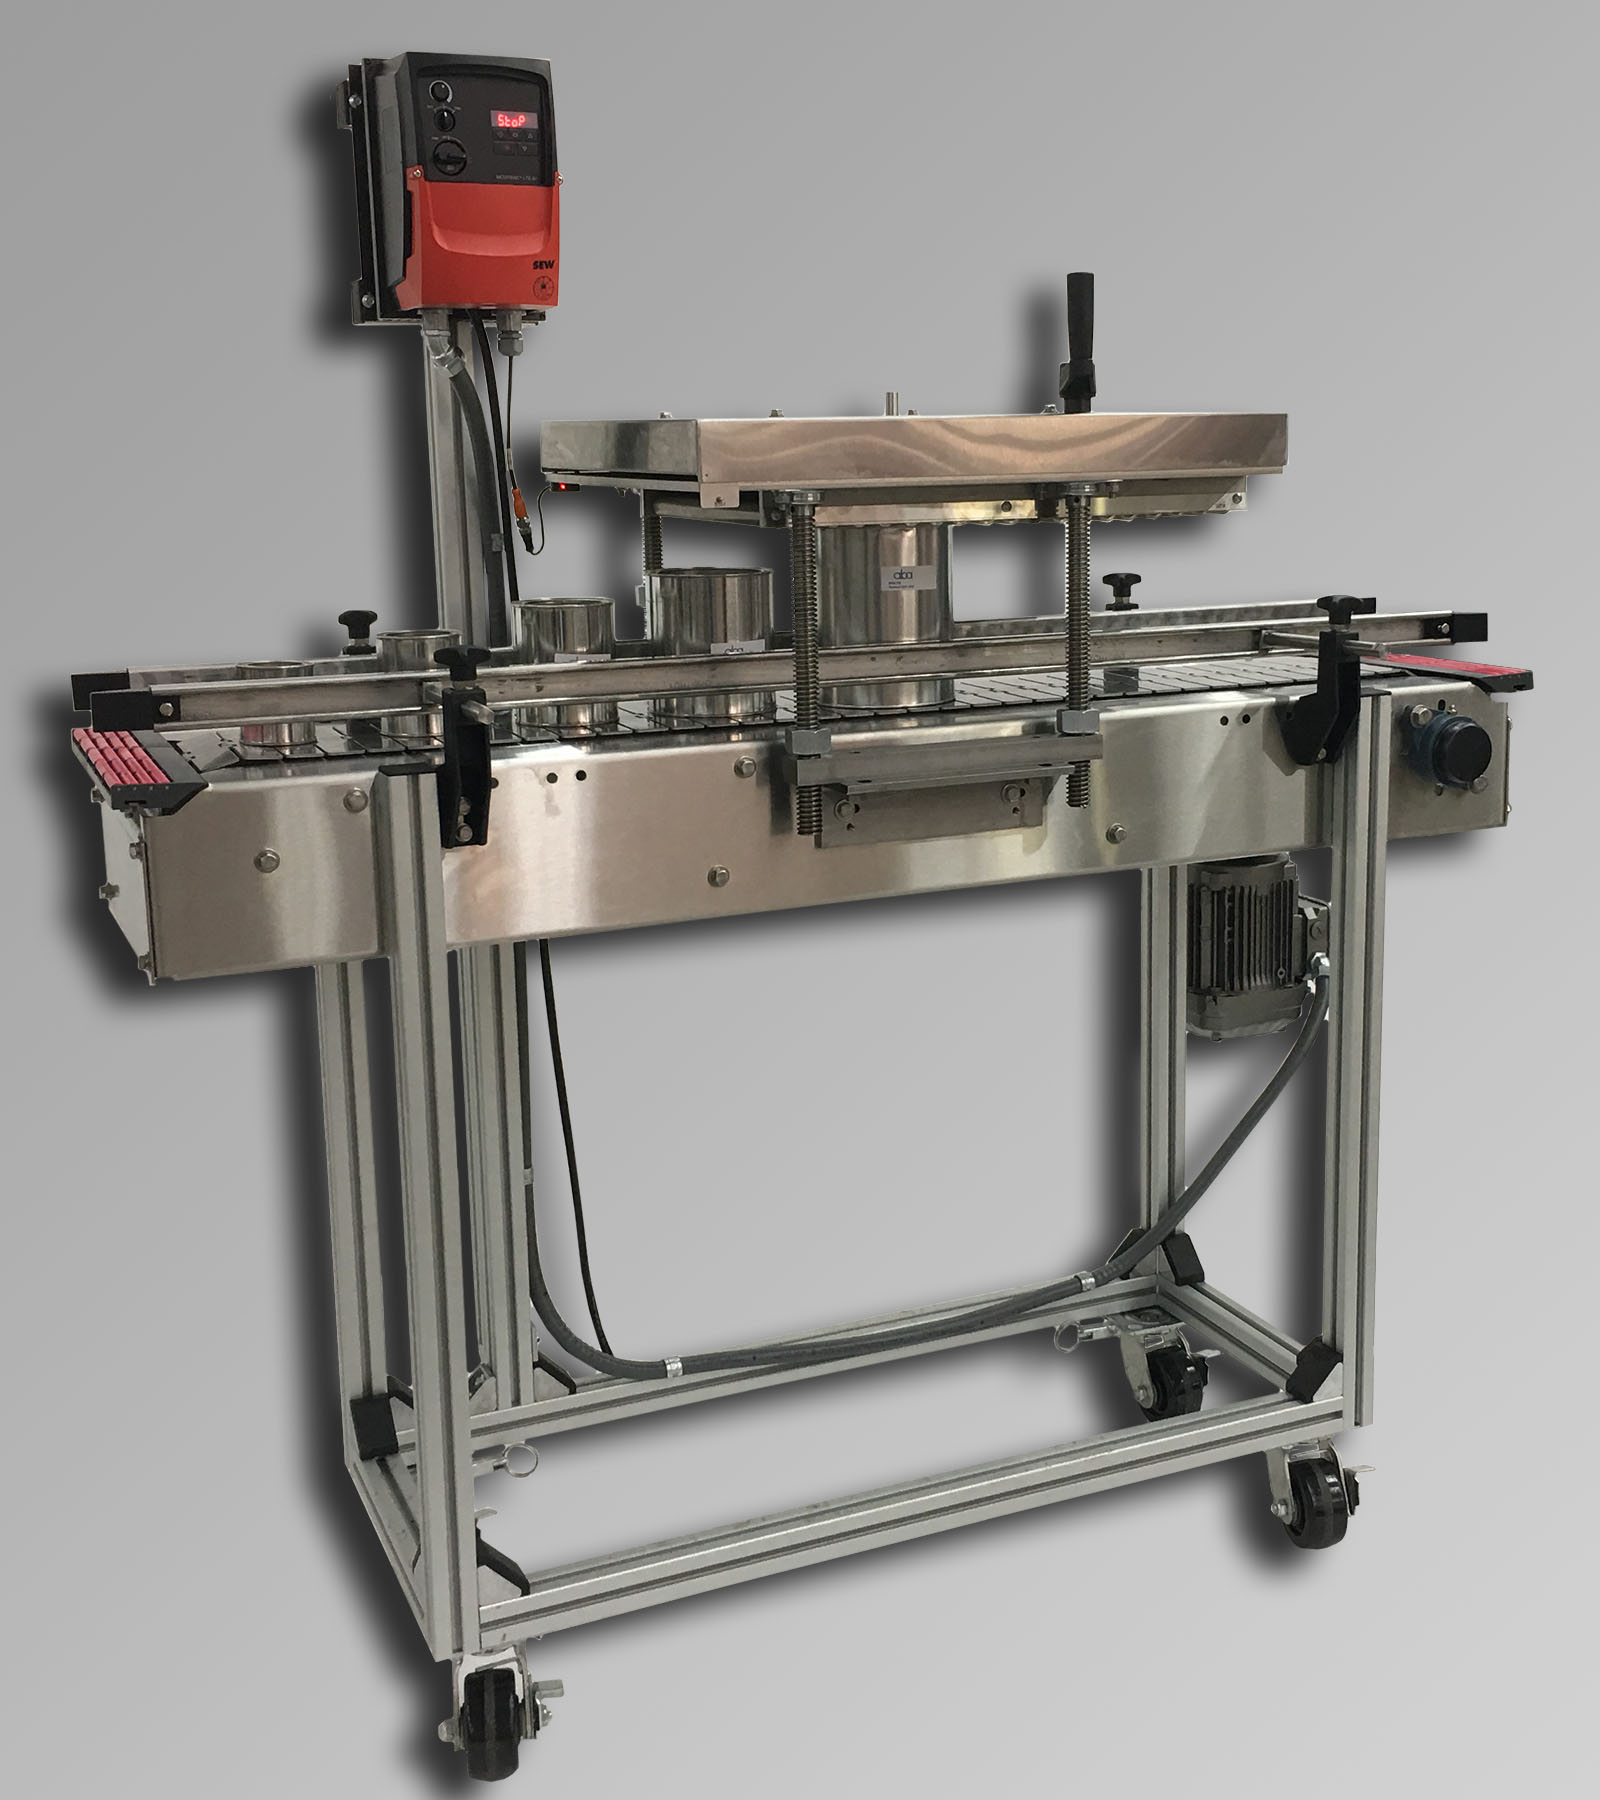 ABA-M436 - 1 gallon roller lid press and conveyor